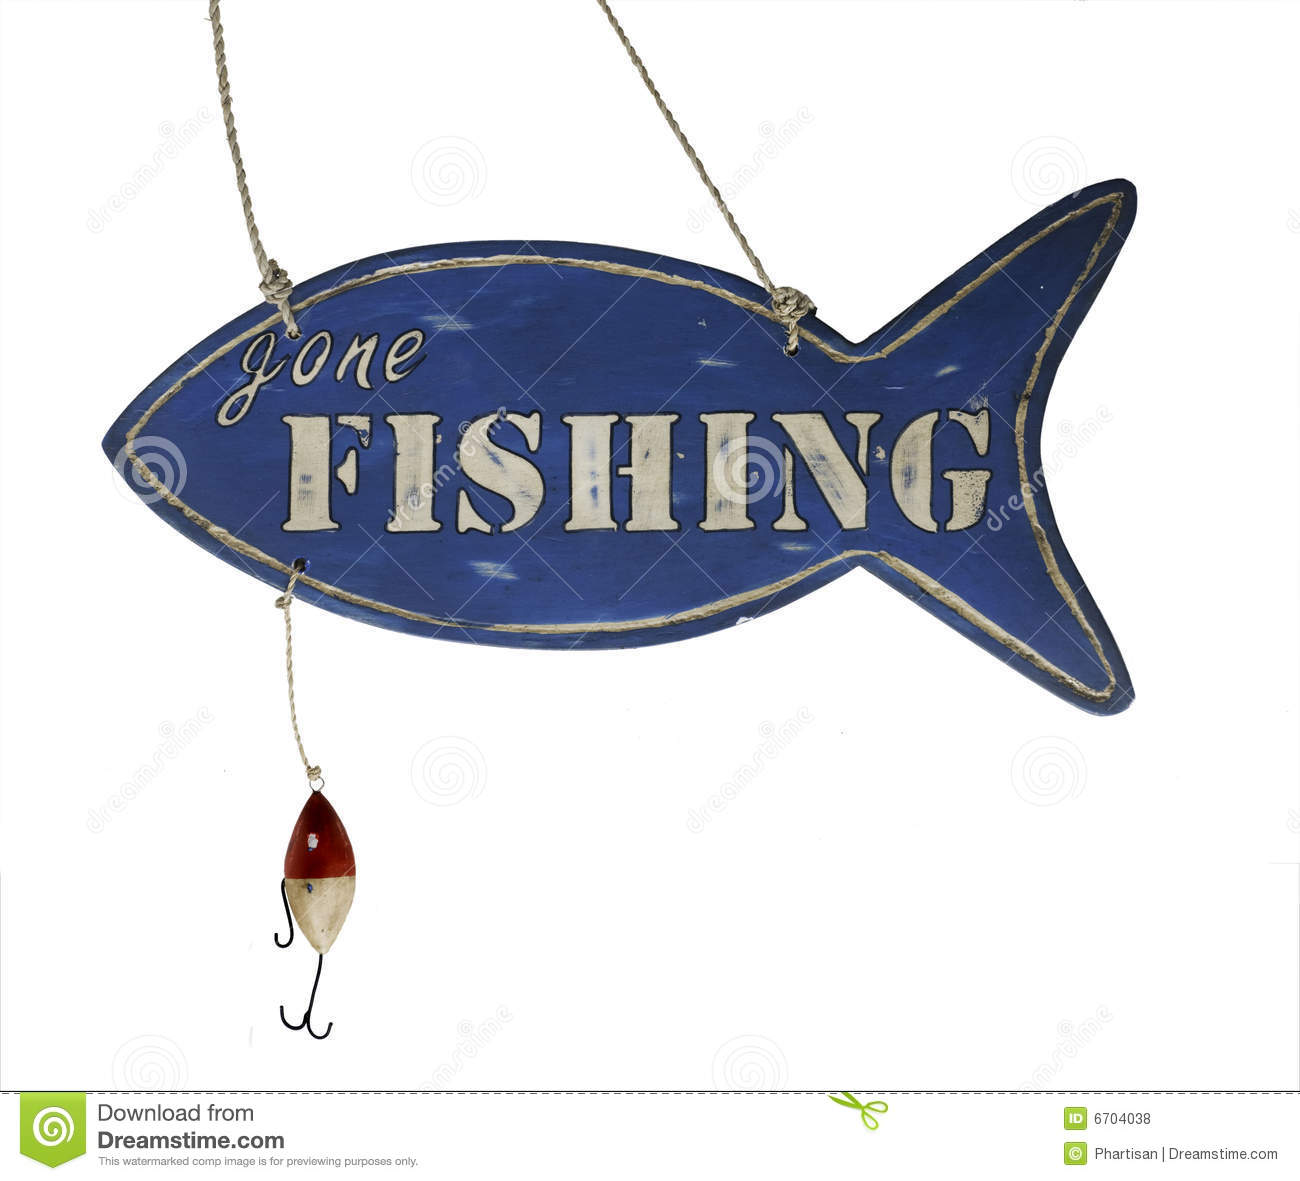 Gone fishing royalty free stock photos image 6704038 for Fishing times free